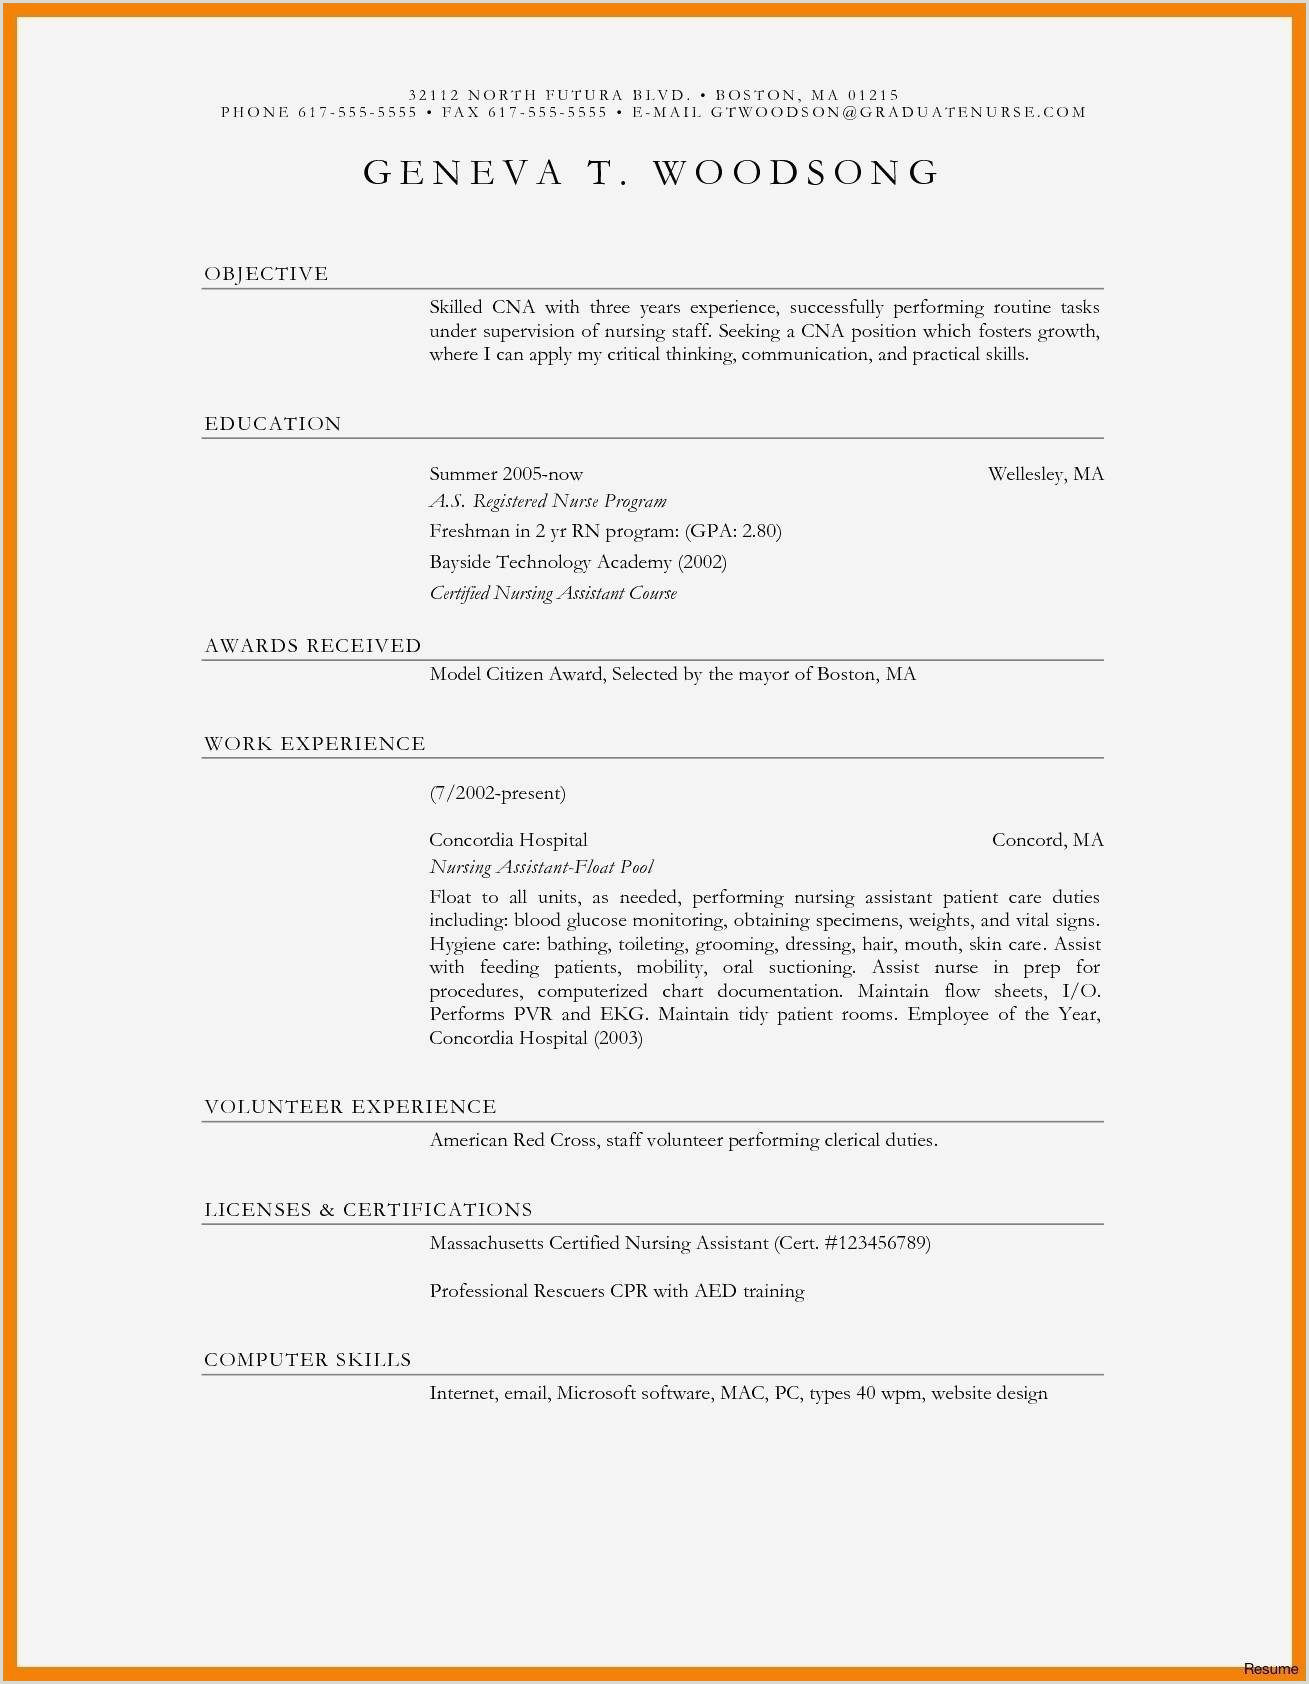 Cv Libre fice Le Luxe New Blank Resume format Resume